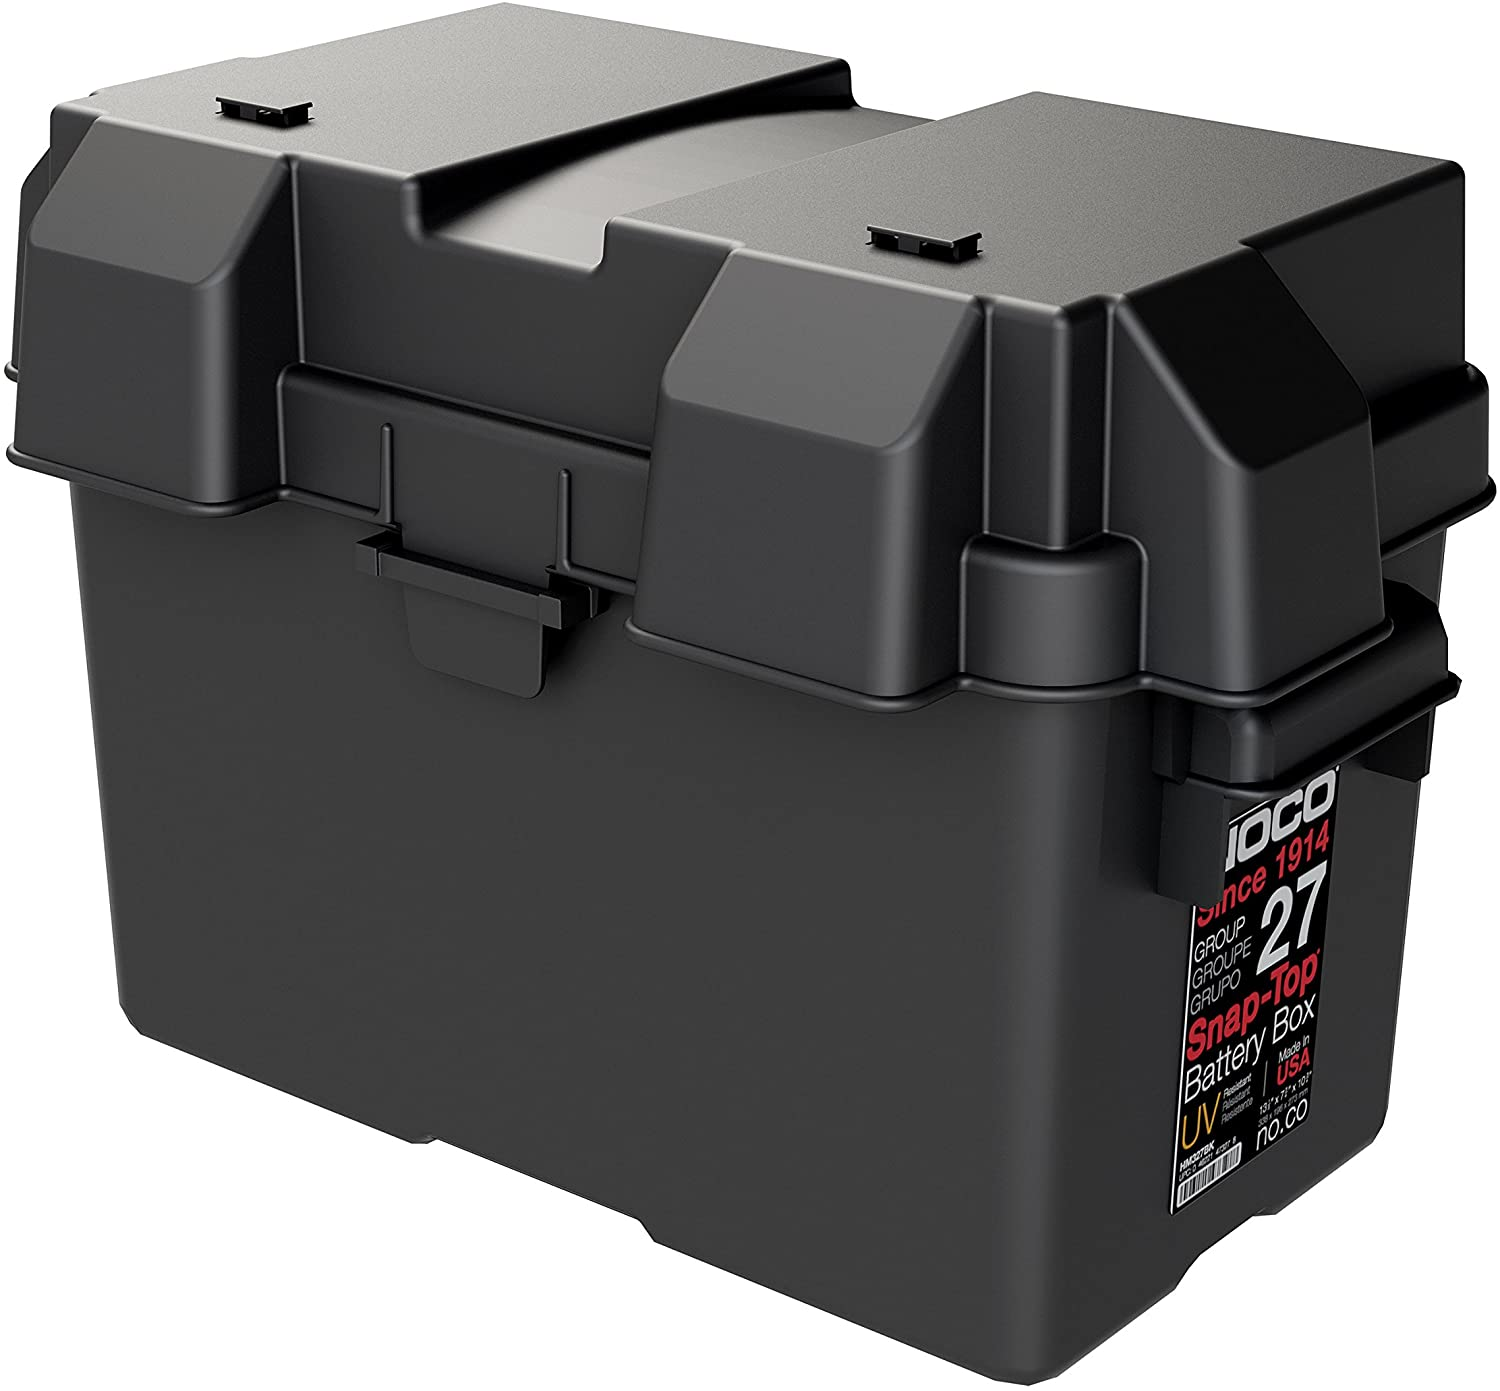 NOCO Snap-Top Battery Box